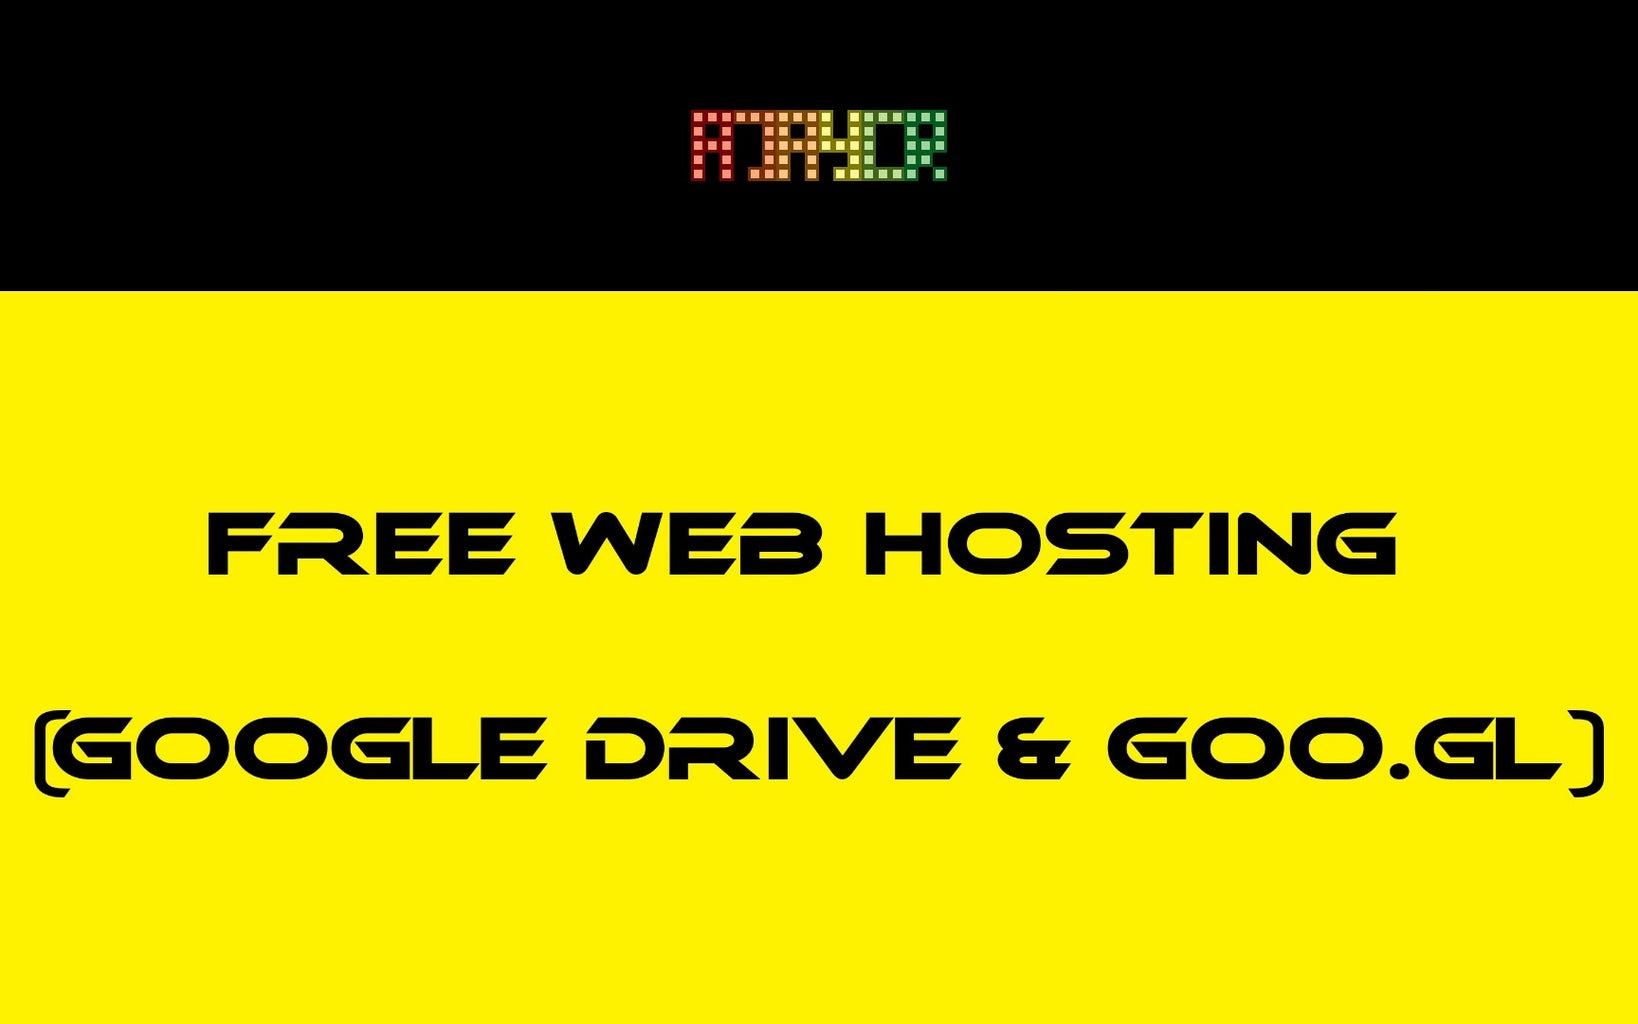 How to Host a Website for Free? Free Web Hosting Solution